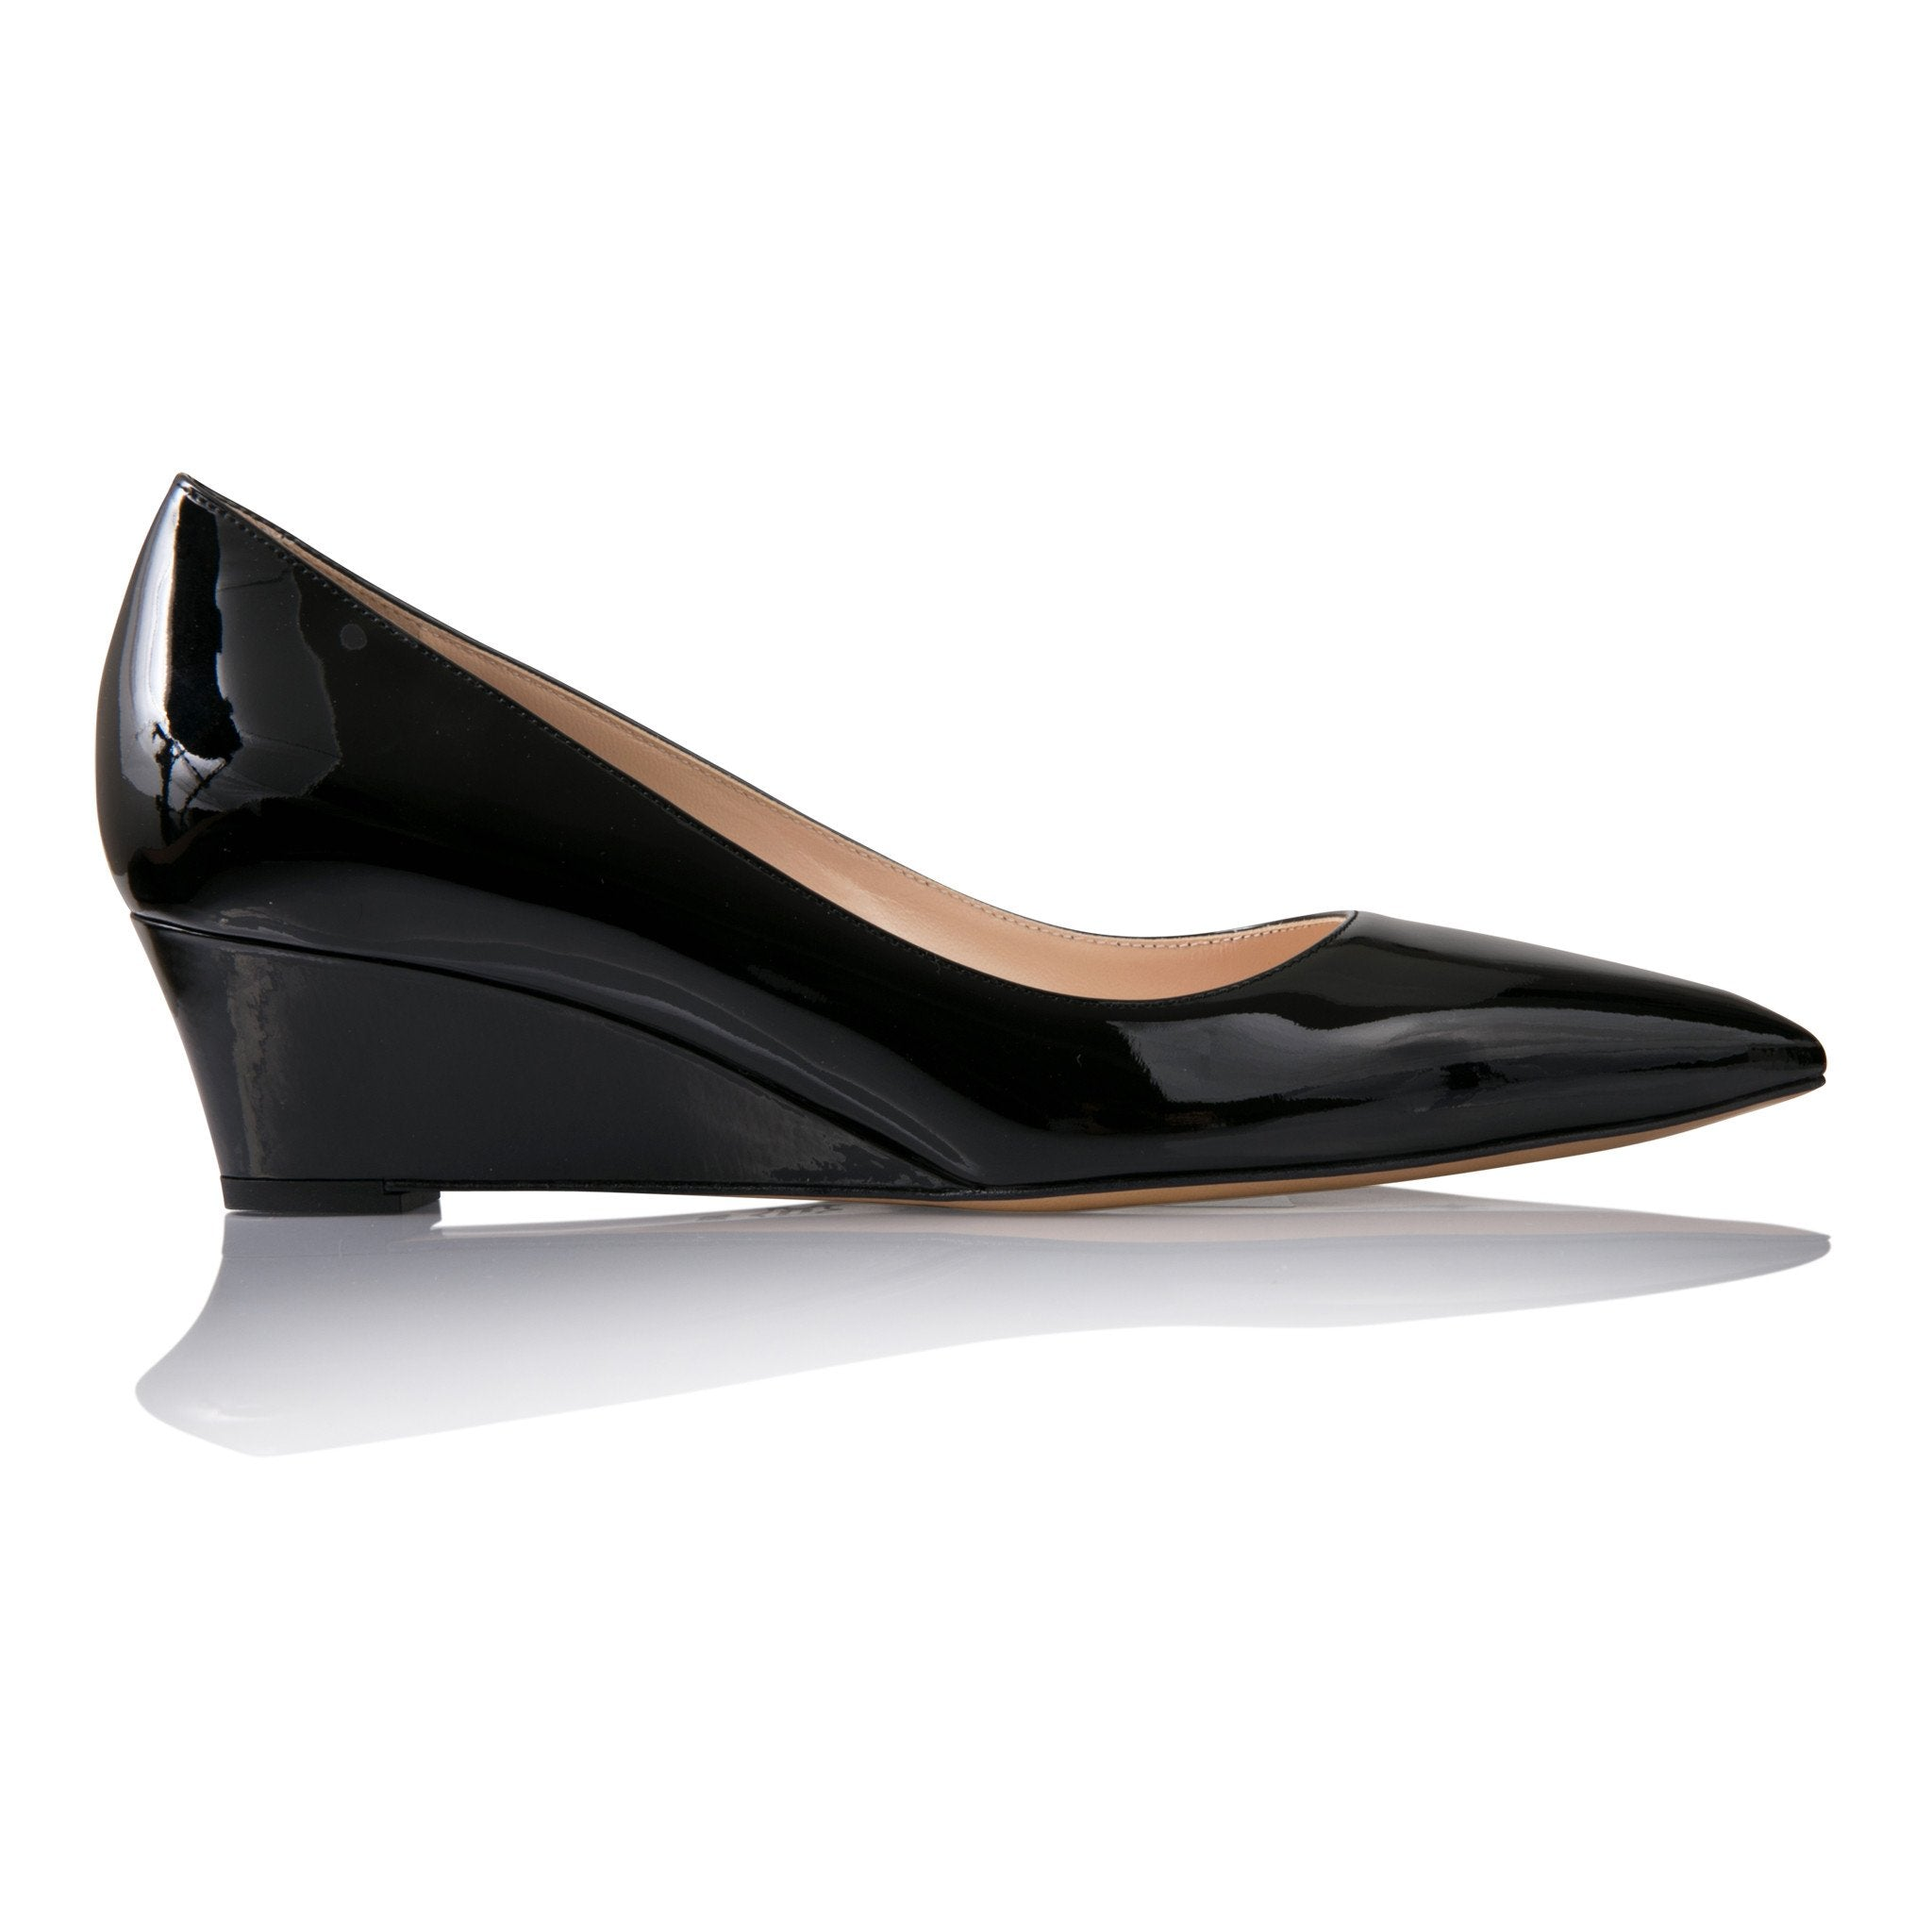 TRENTO - Patent Nero, VIAJIYU - Women's Hand Made Sustainable Luxury Shoes. Made in Italy. Made to Order.